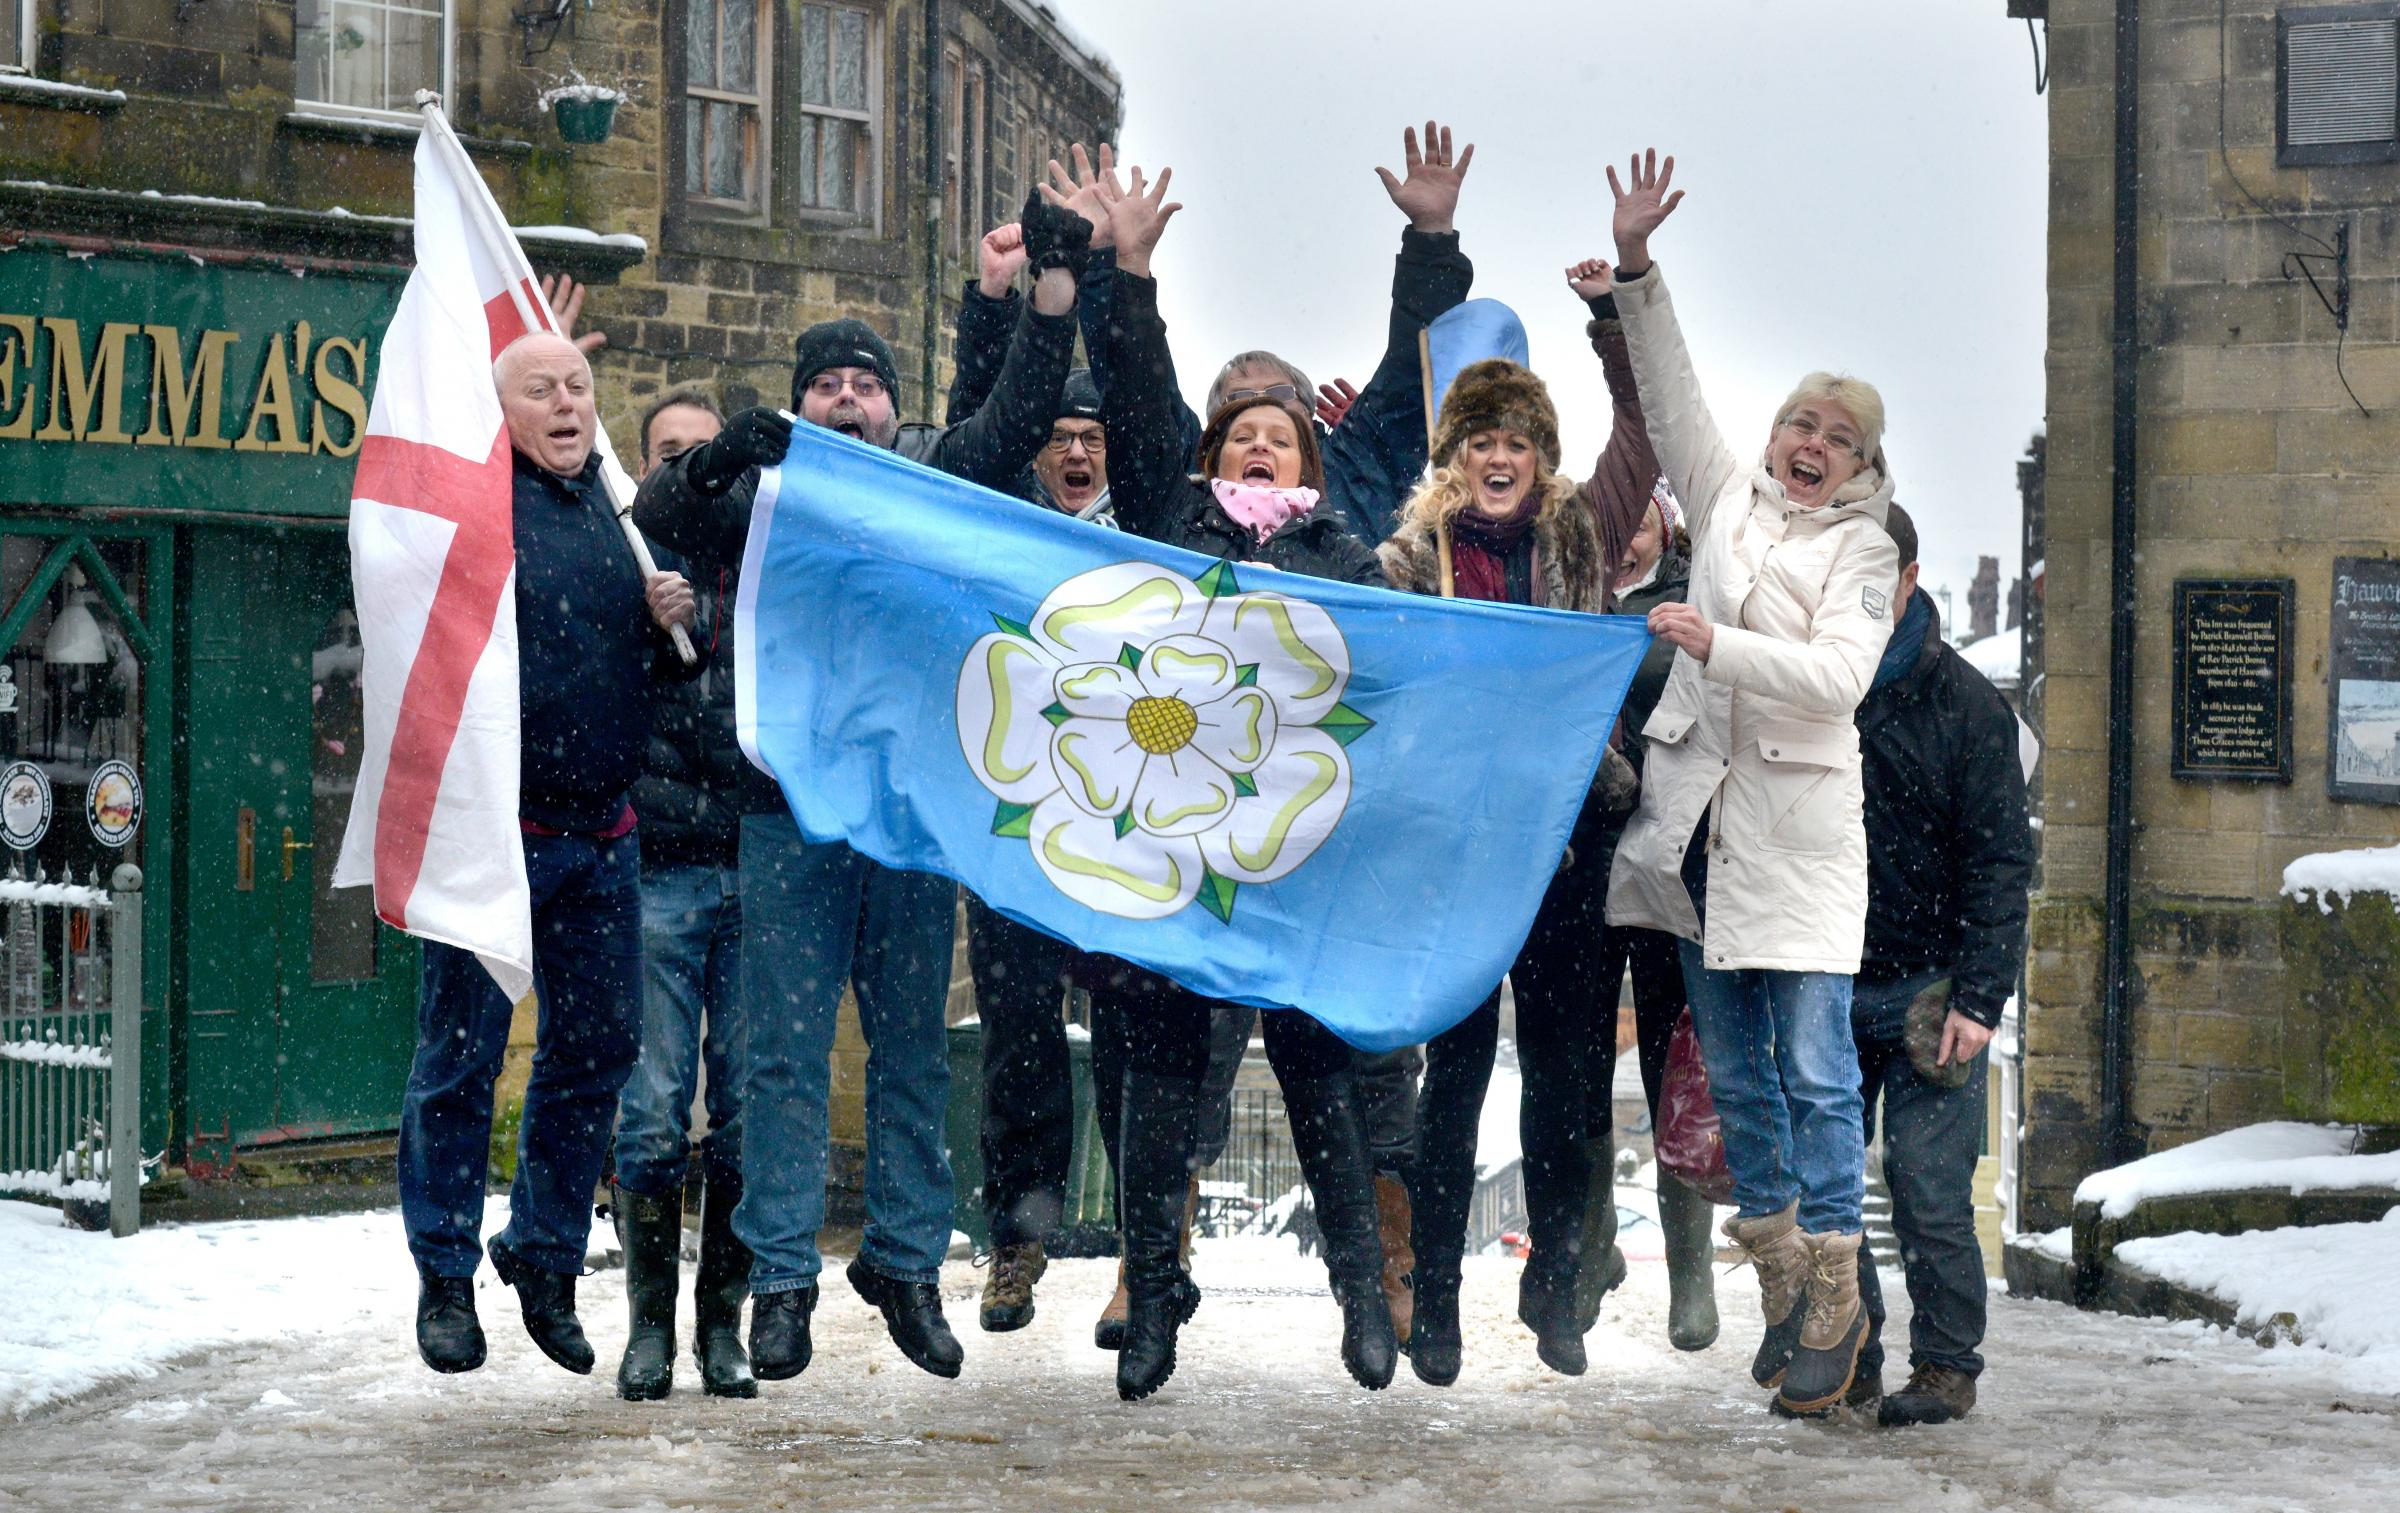 Haworth locals are delighted at the announcement that Haworth is to be on the route of the Tour de Yorkshire for 2015